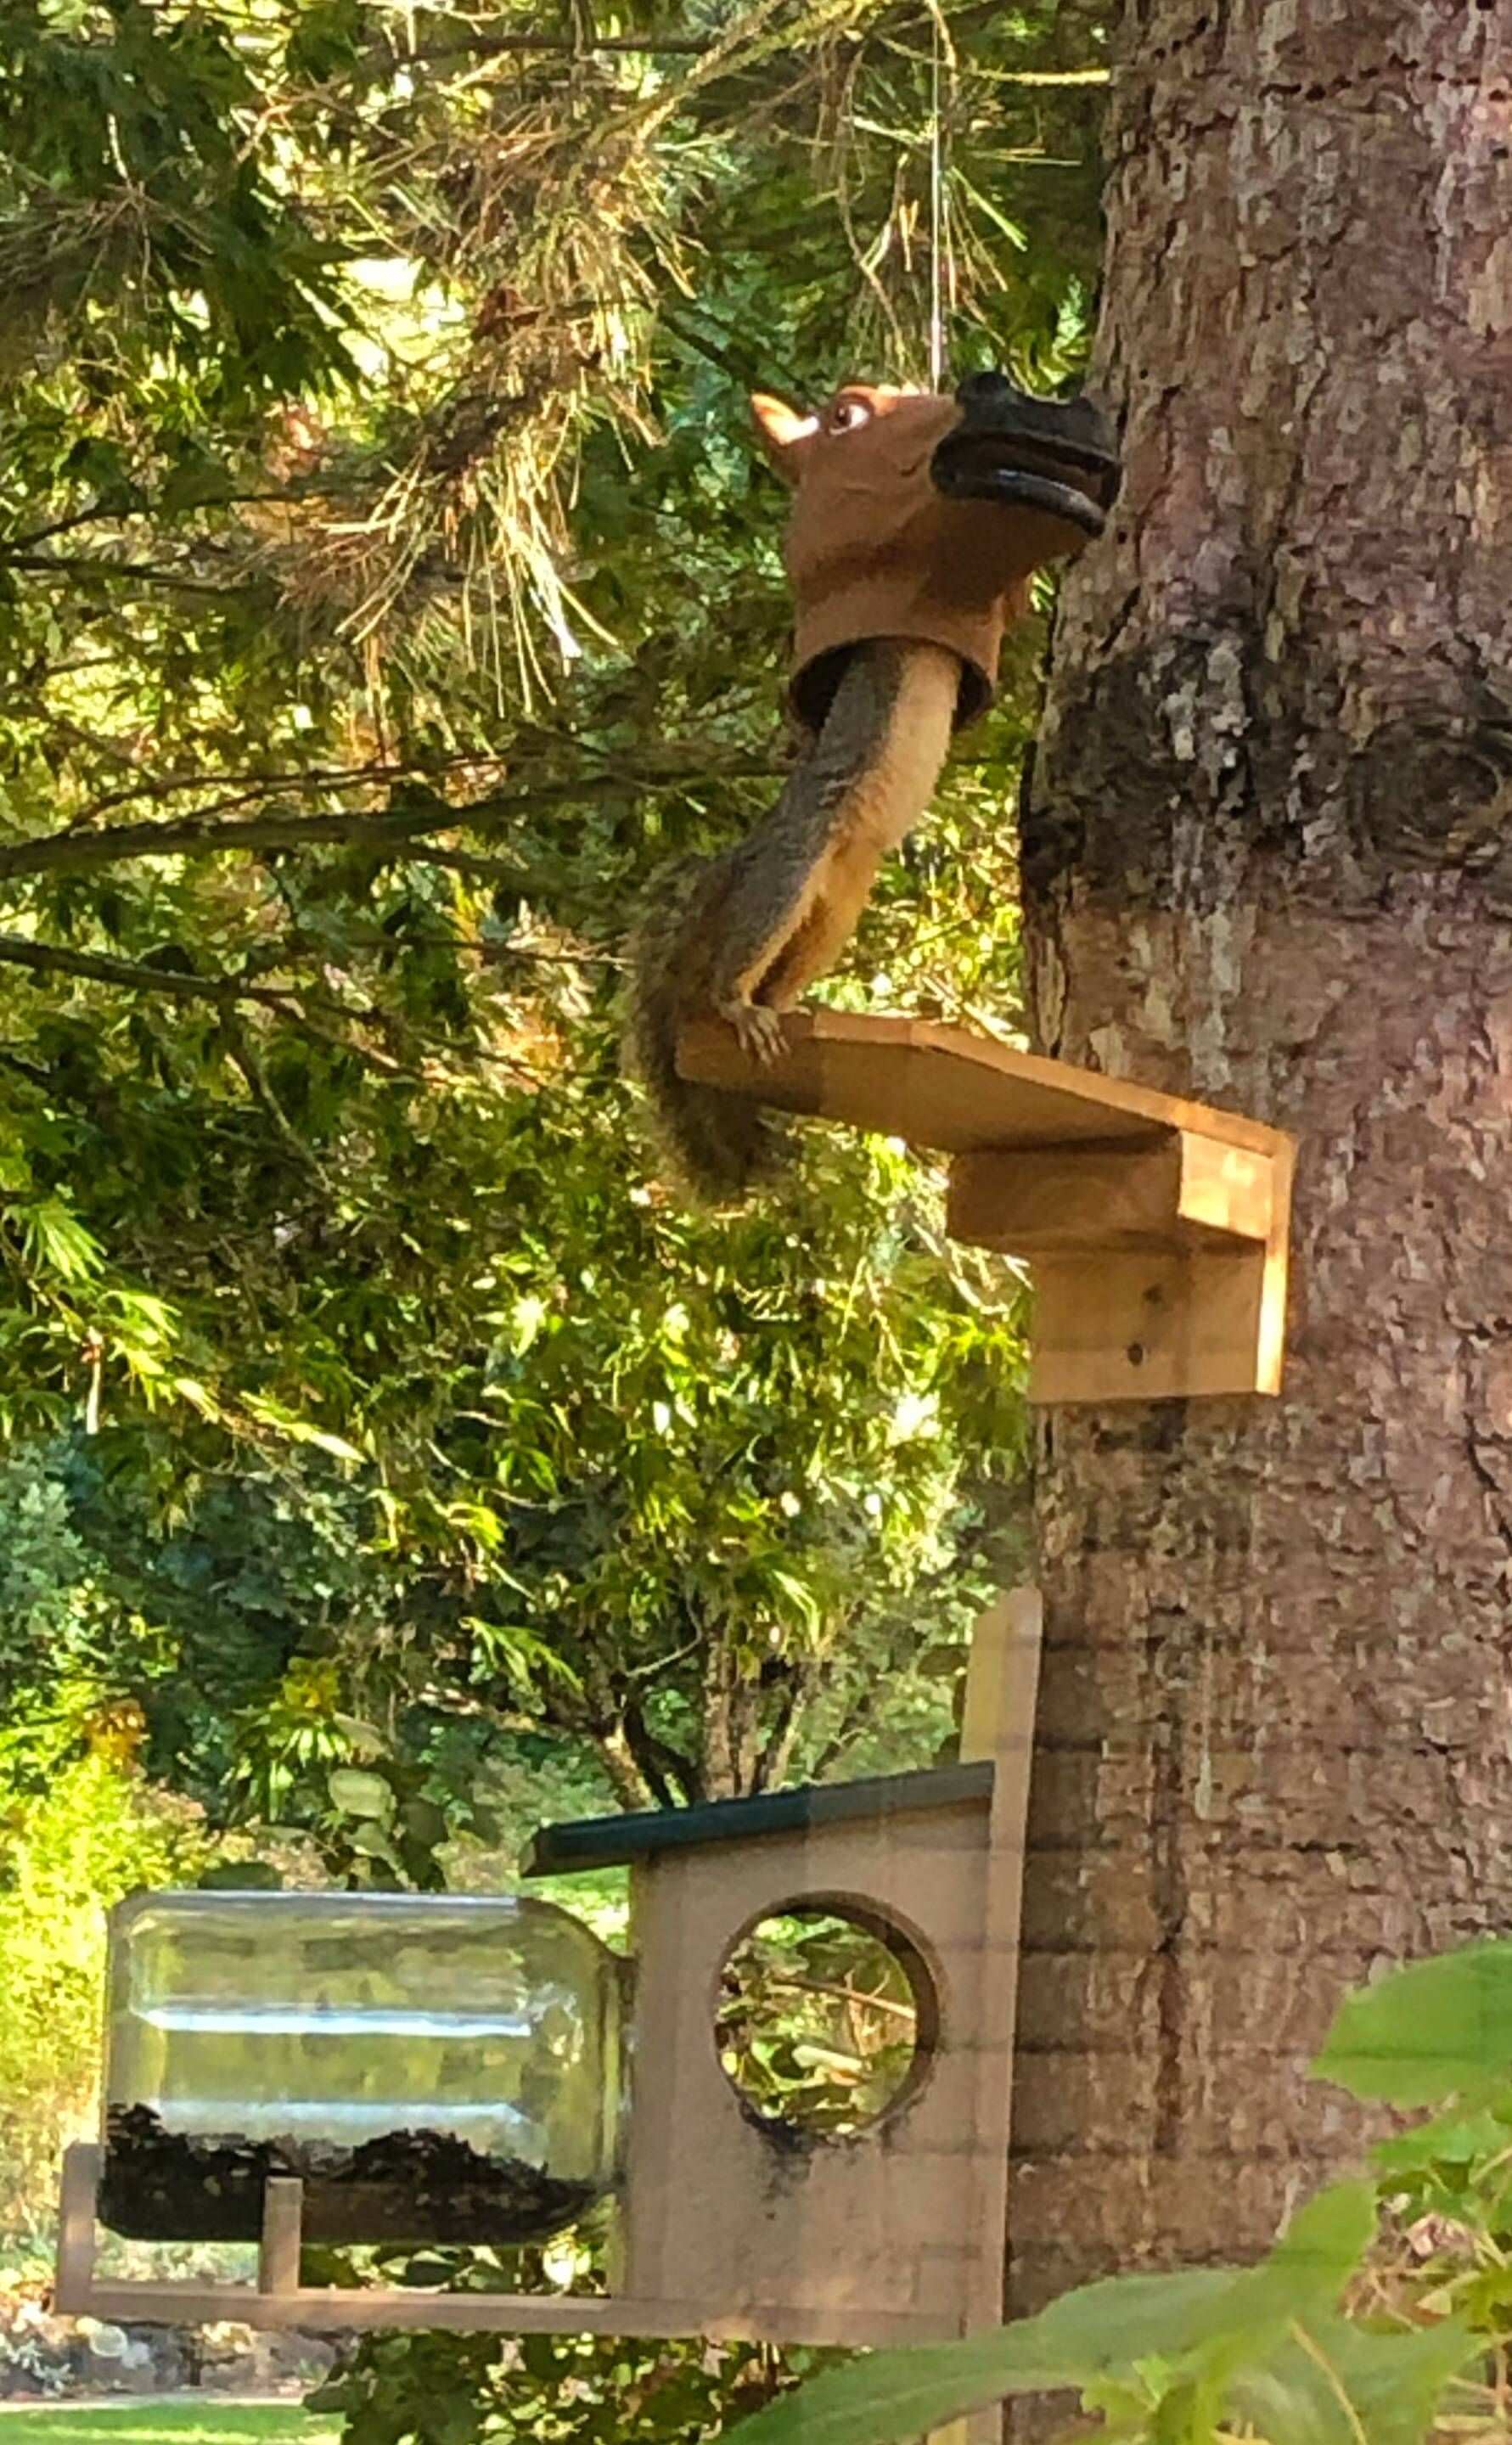 Got my wife a horse head squirrel feeder for her birthday and today one of them finally figured it out.